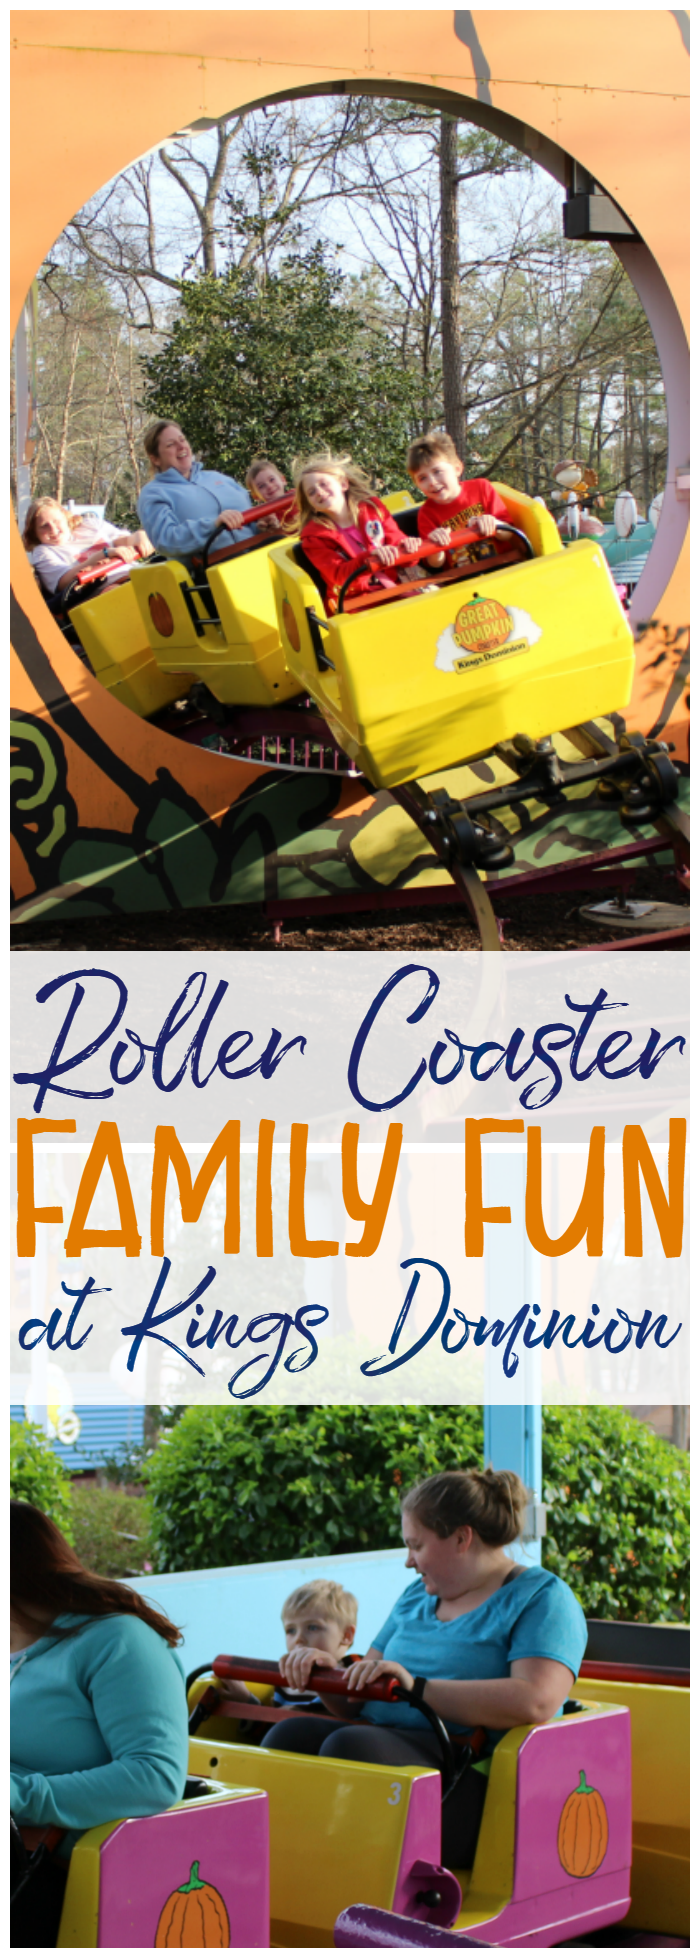 Kings Dominion has roller coasters for the whole family!